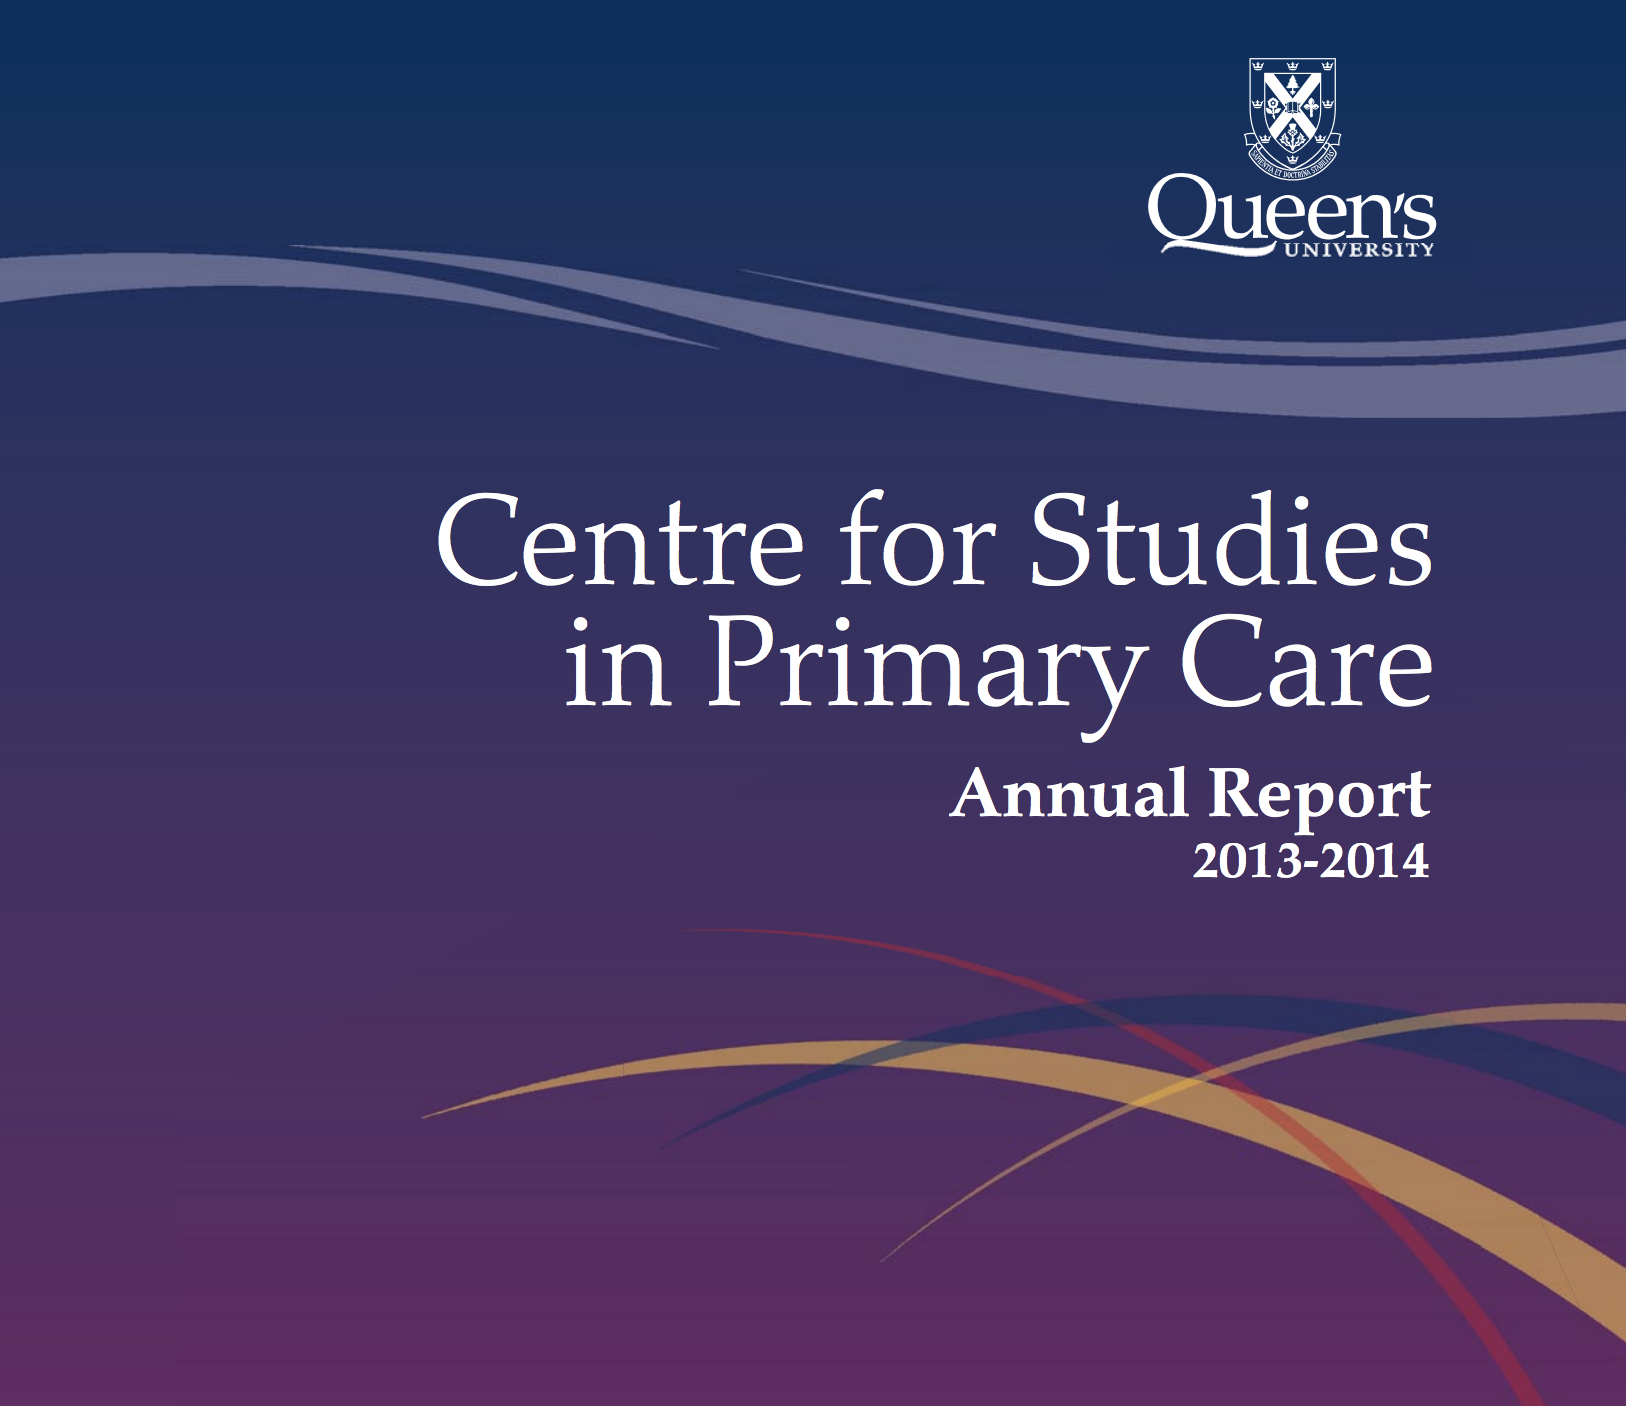 2013-2014 Centre for Studies in Primary Care Annual Report